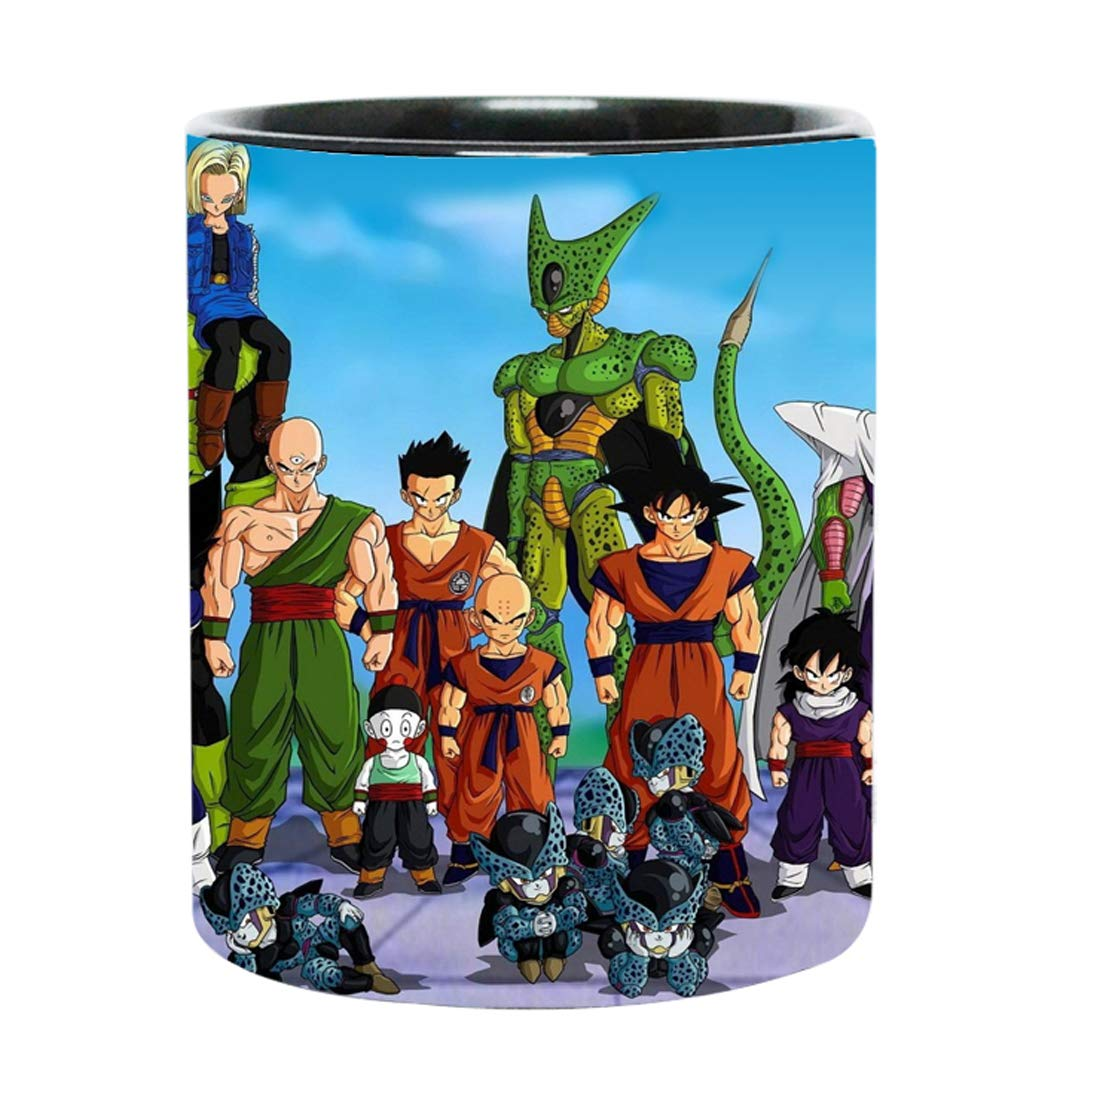 Buy Dragon Ball Z Cartoon Coffee Mug For Friends Birthday Gifts Kids Return By Impresion Online At Low Prices In India